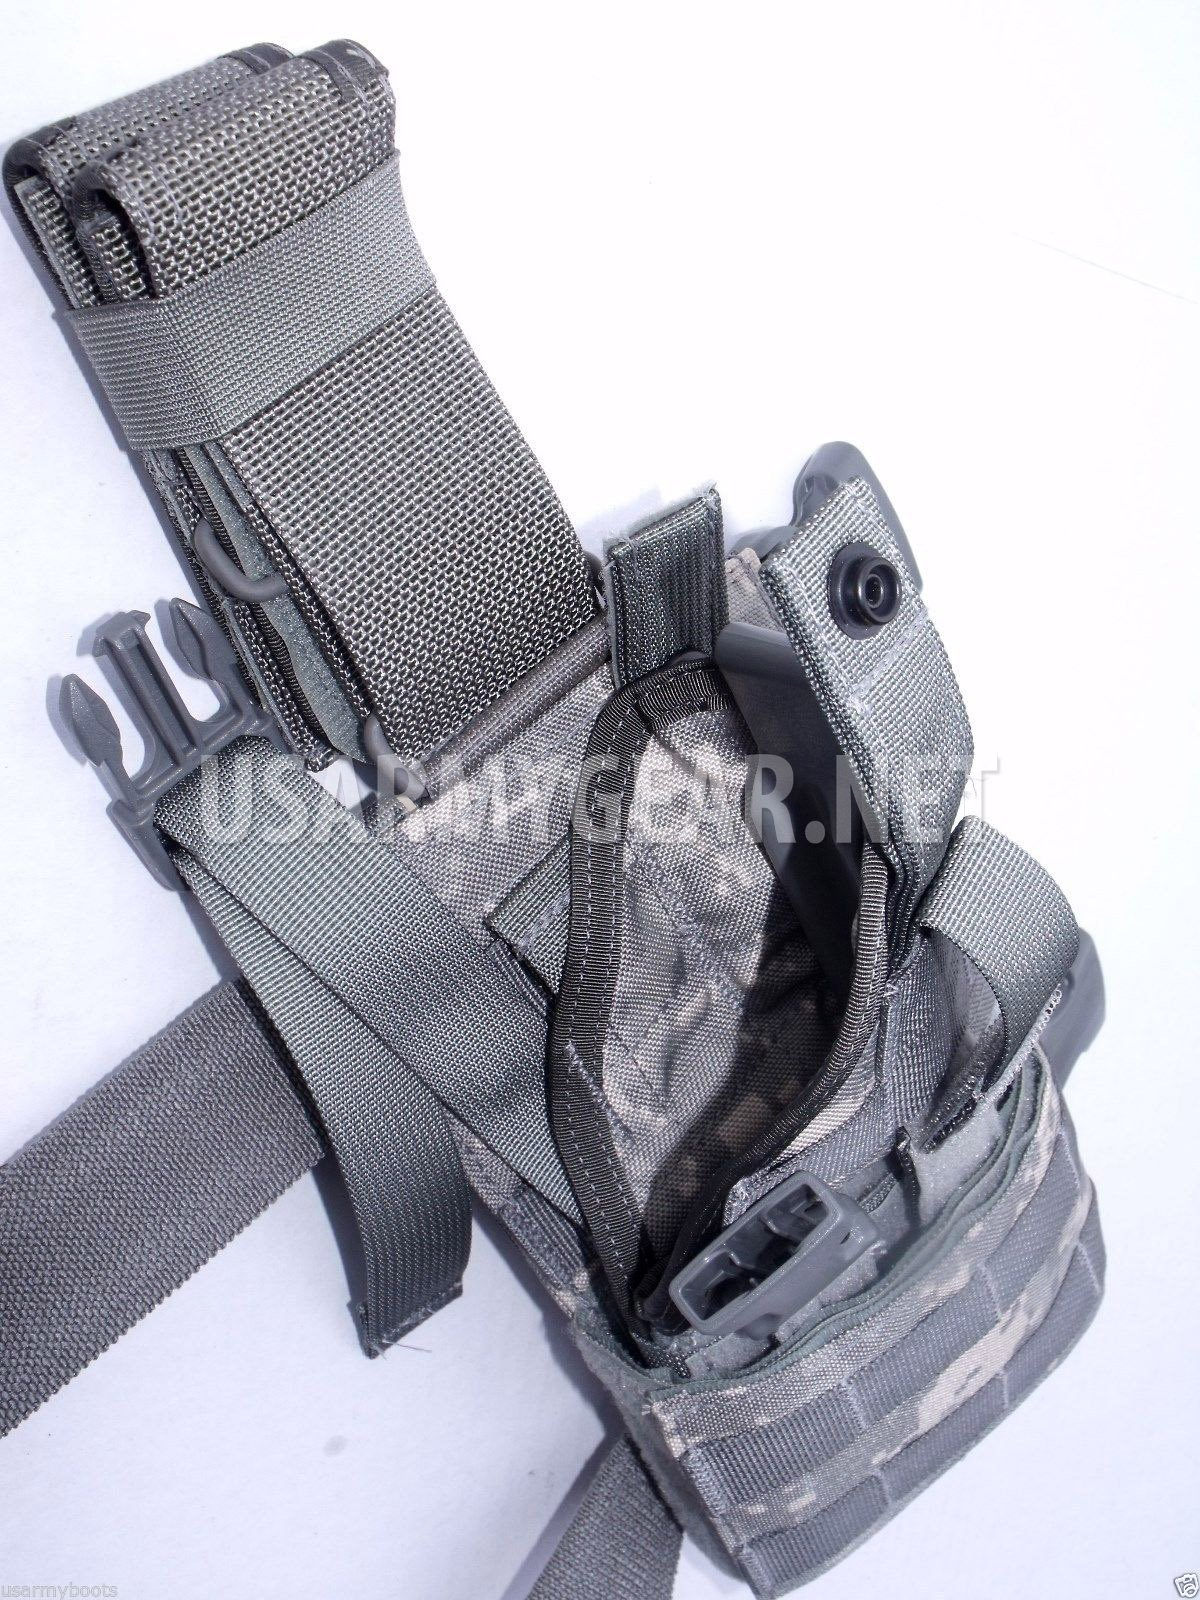 New Made in USA Army Military ACU Digital Camo Airsoft Drop Leg Restraints MOLLE Universal UH-92F-MS-UCA Holster Set Extension + Straps Eagle by Eagle Industries U.S. Government